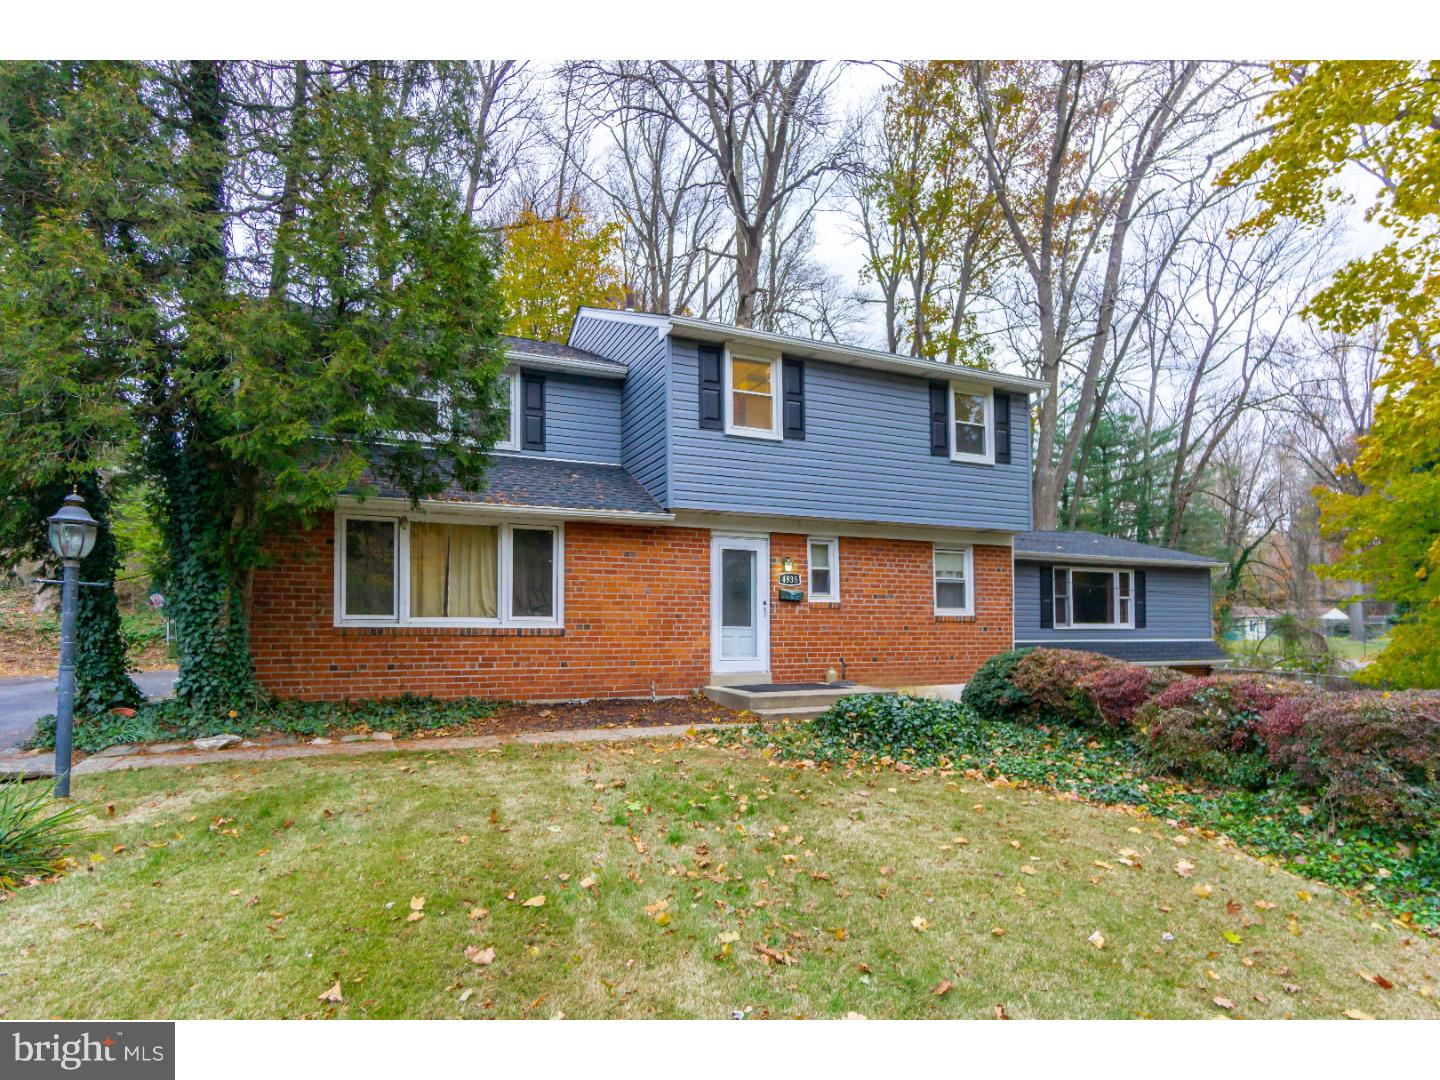 4935 CHESTER CREEK ROAD, BROOKHAVEN, PA 19015